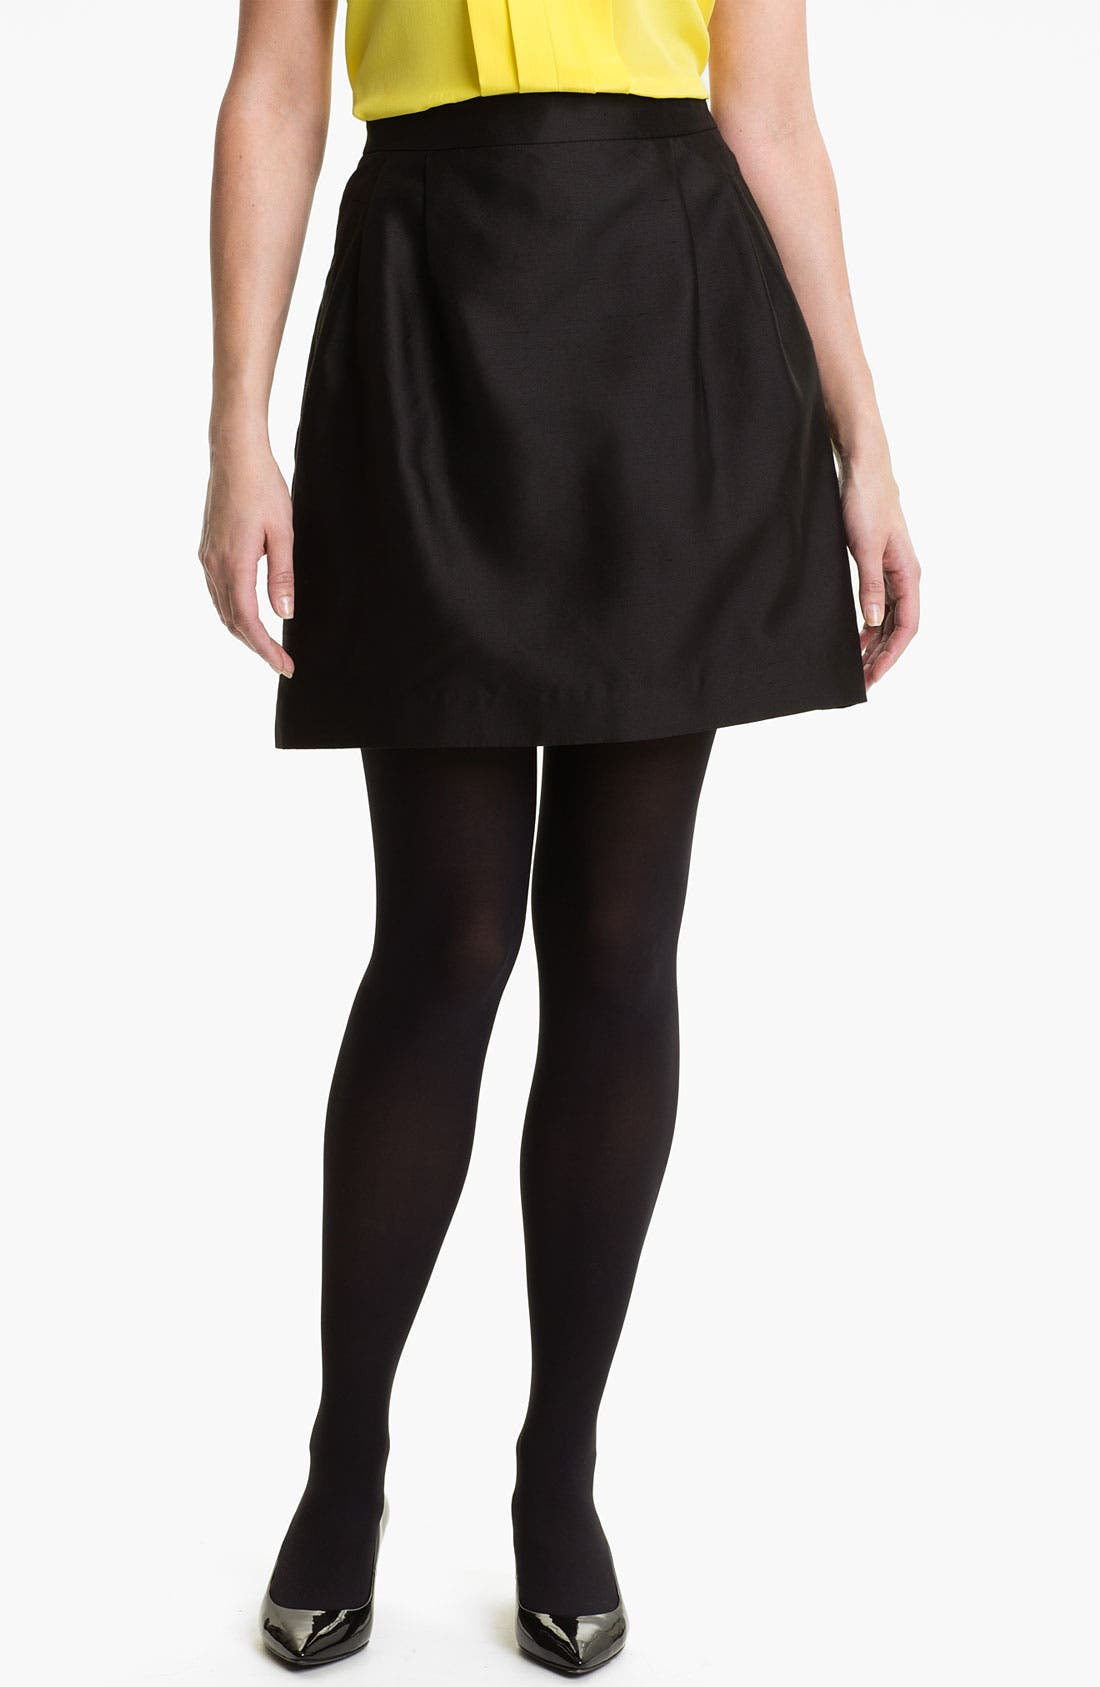 Alternate Image 1 Selected - kate spade new york 'dominick' skirt